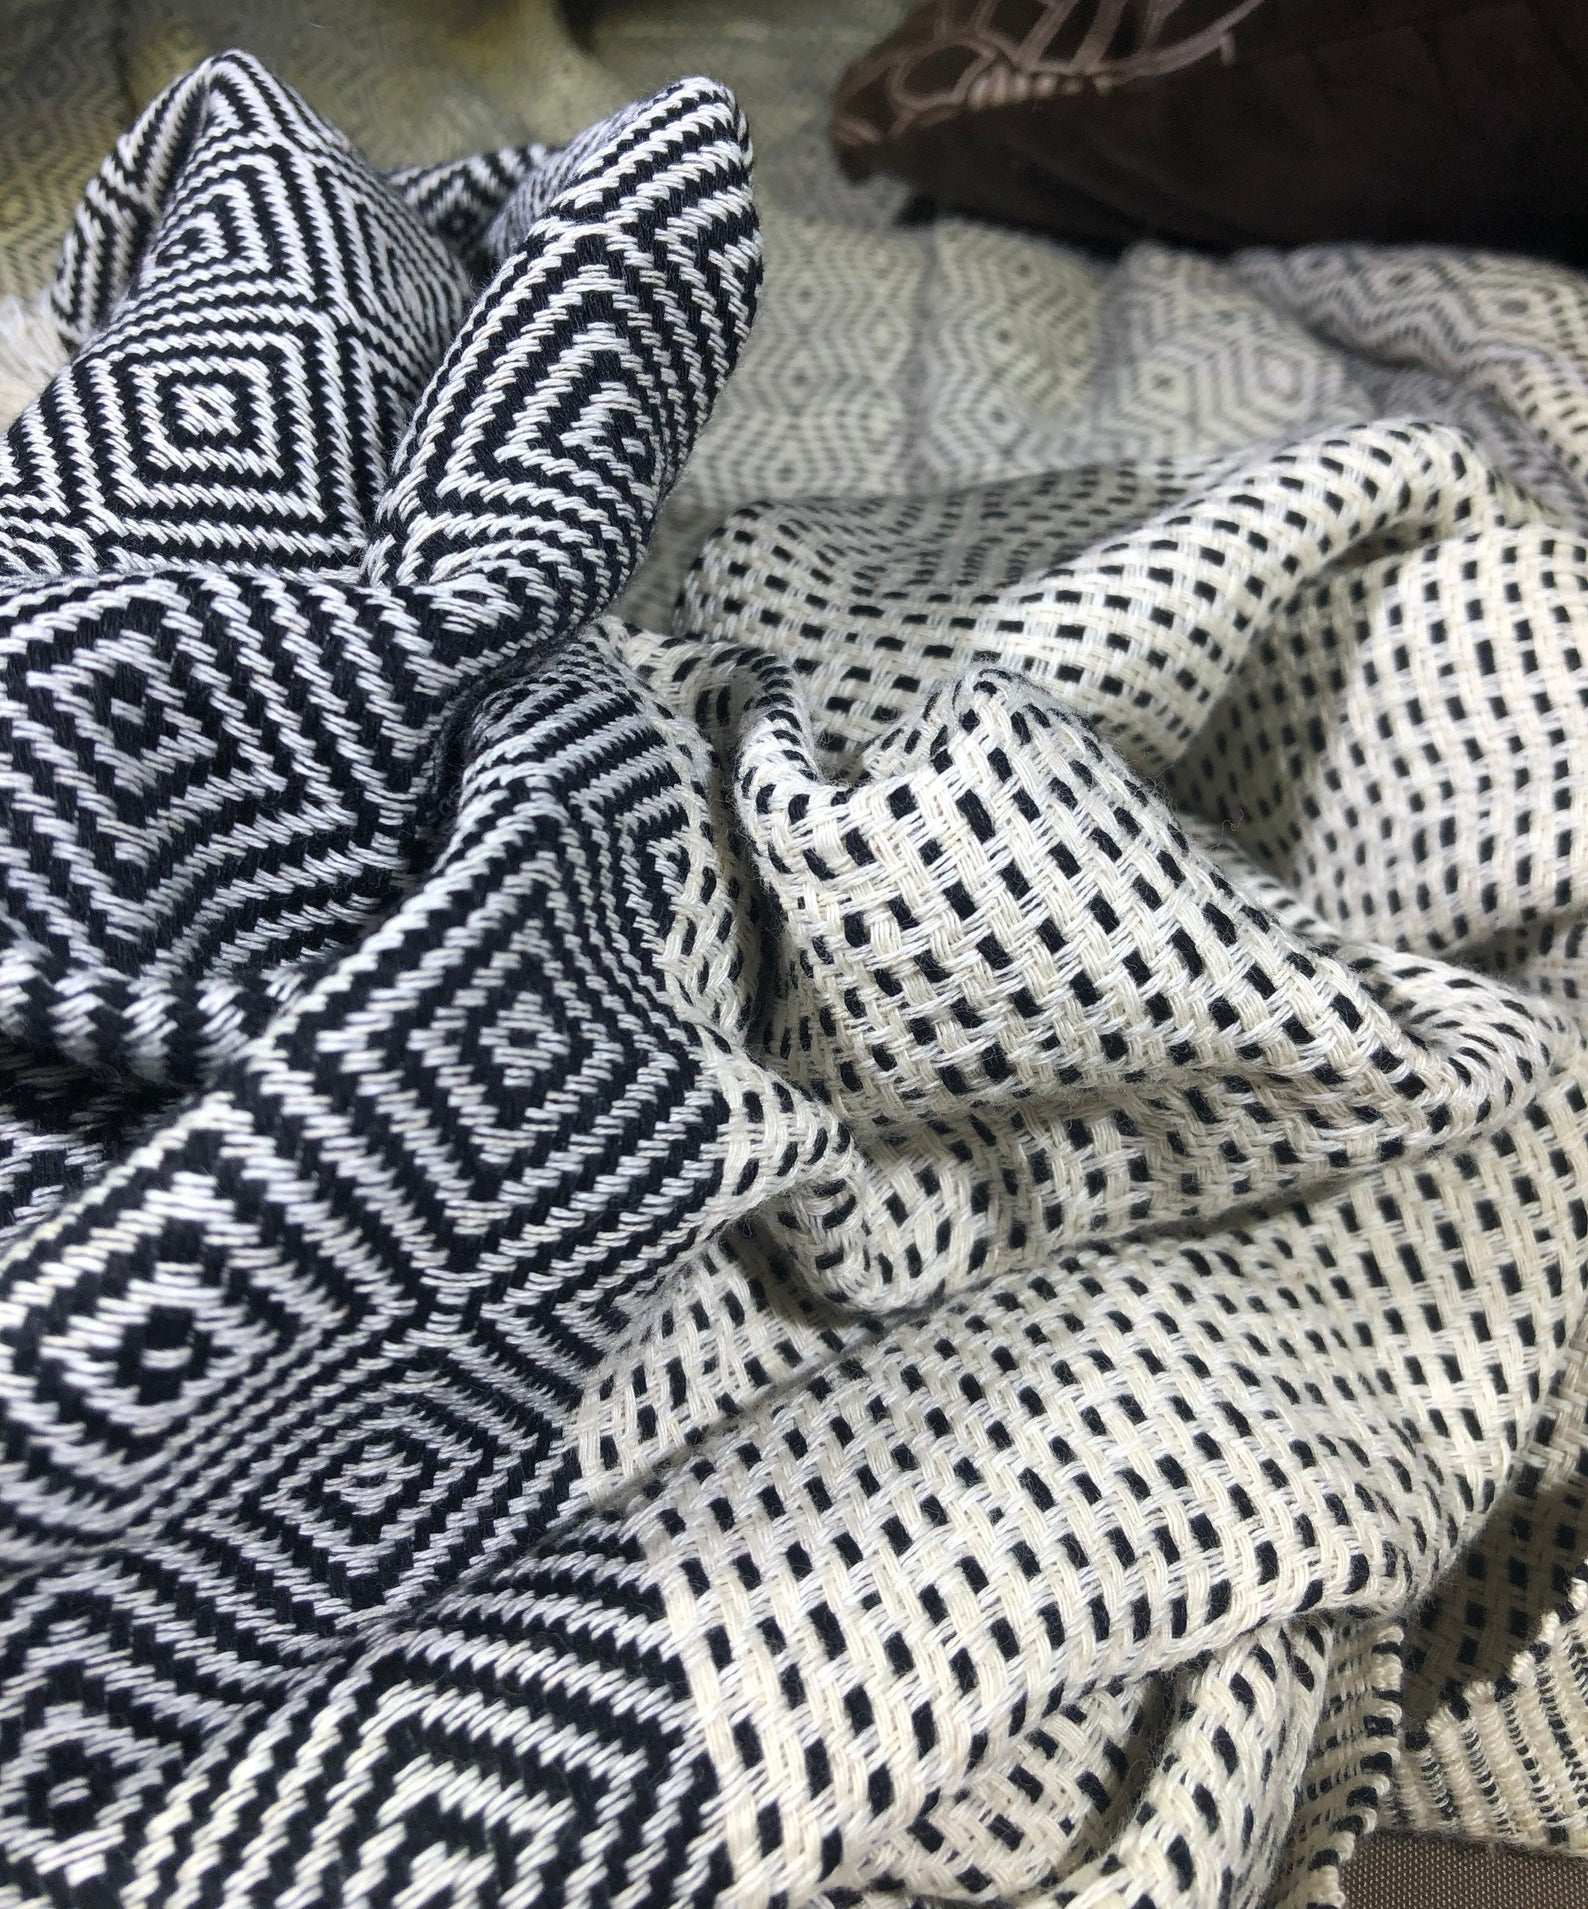 Turkish Cotton Handwoven Lightweight Queen Blanket